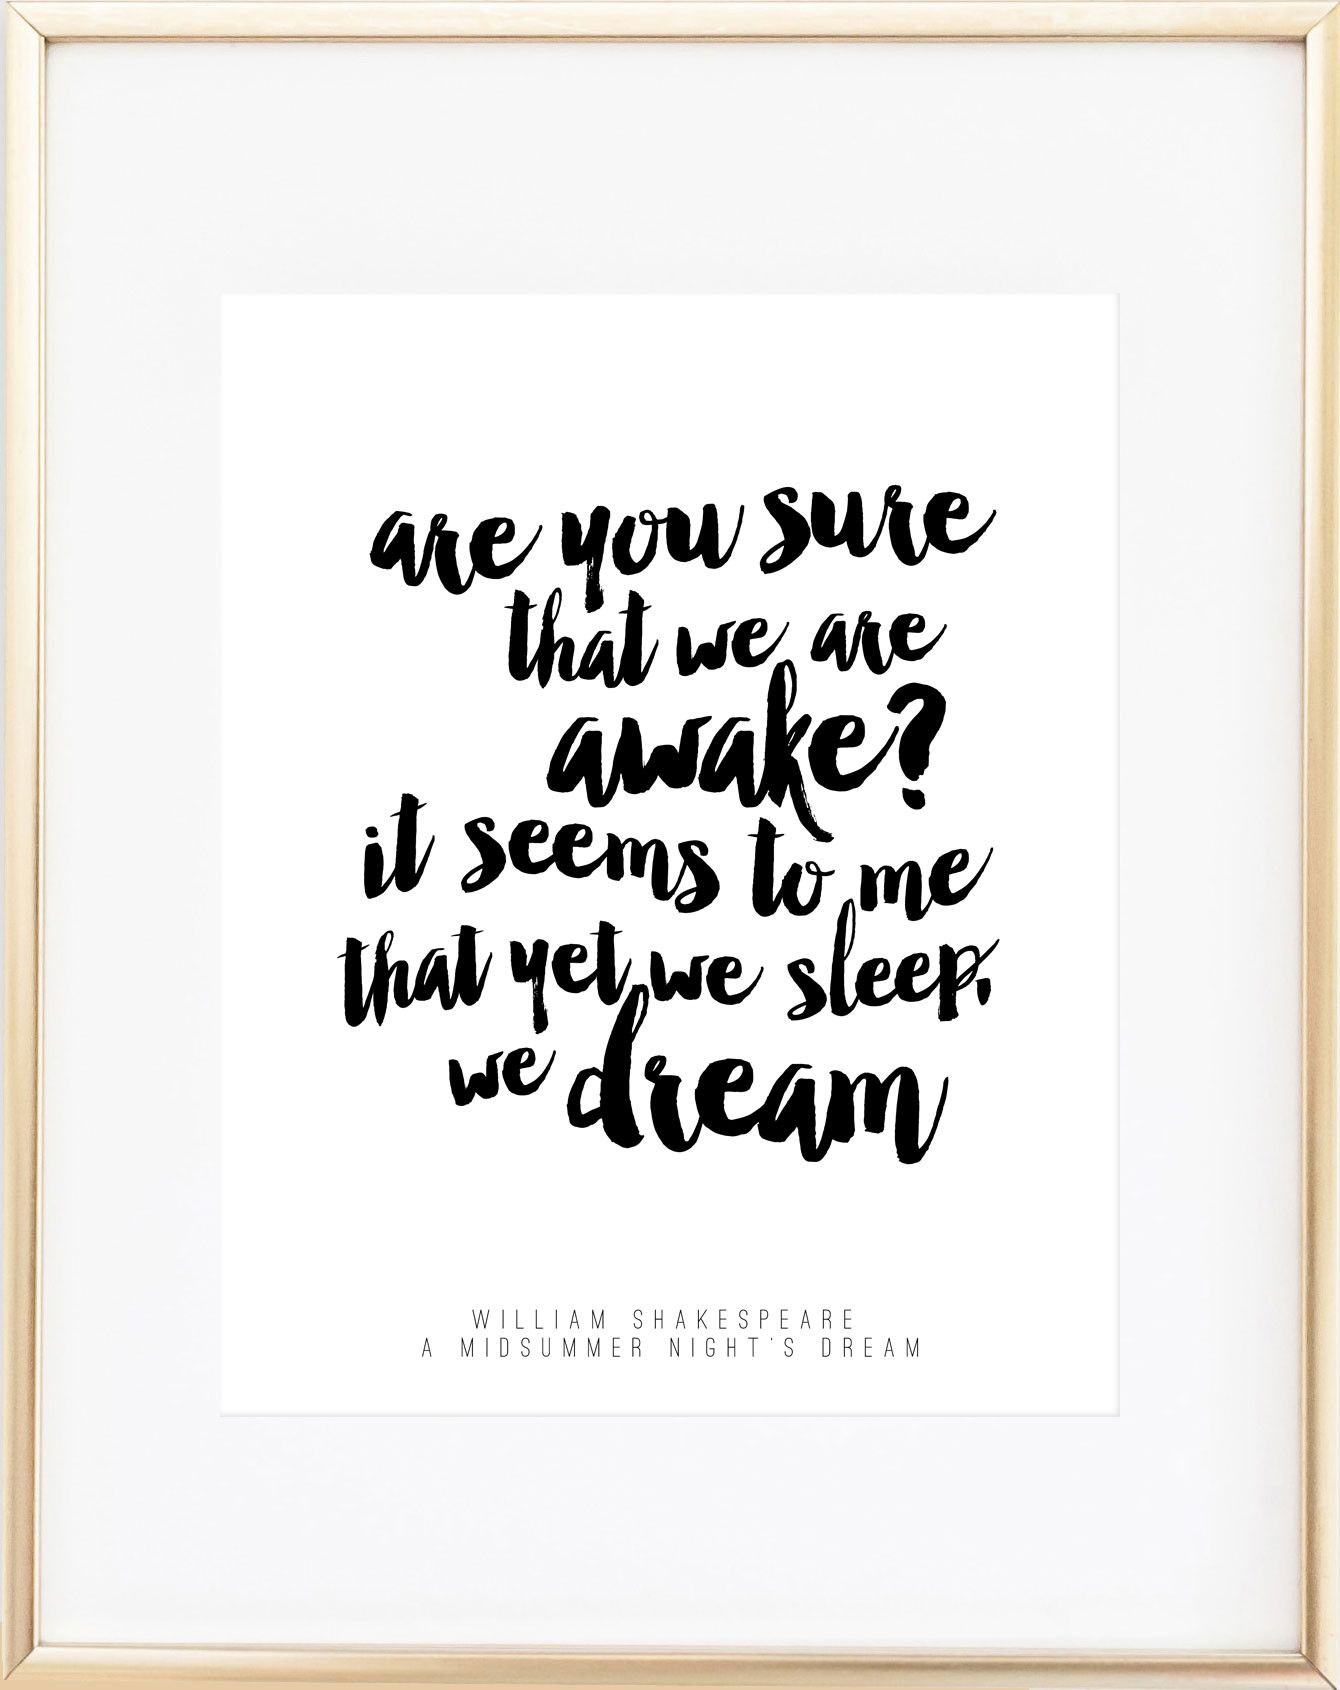 Midsummer Night's Dream Quotes Shakespeare Quote  A Midsummer Night's Dream  Pinterest